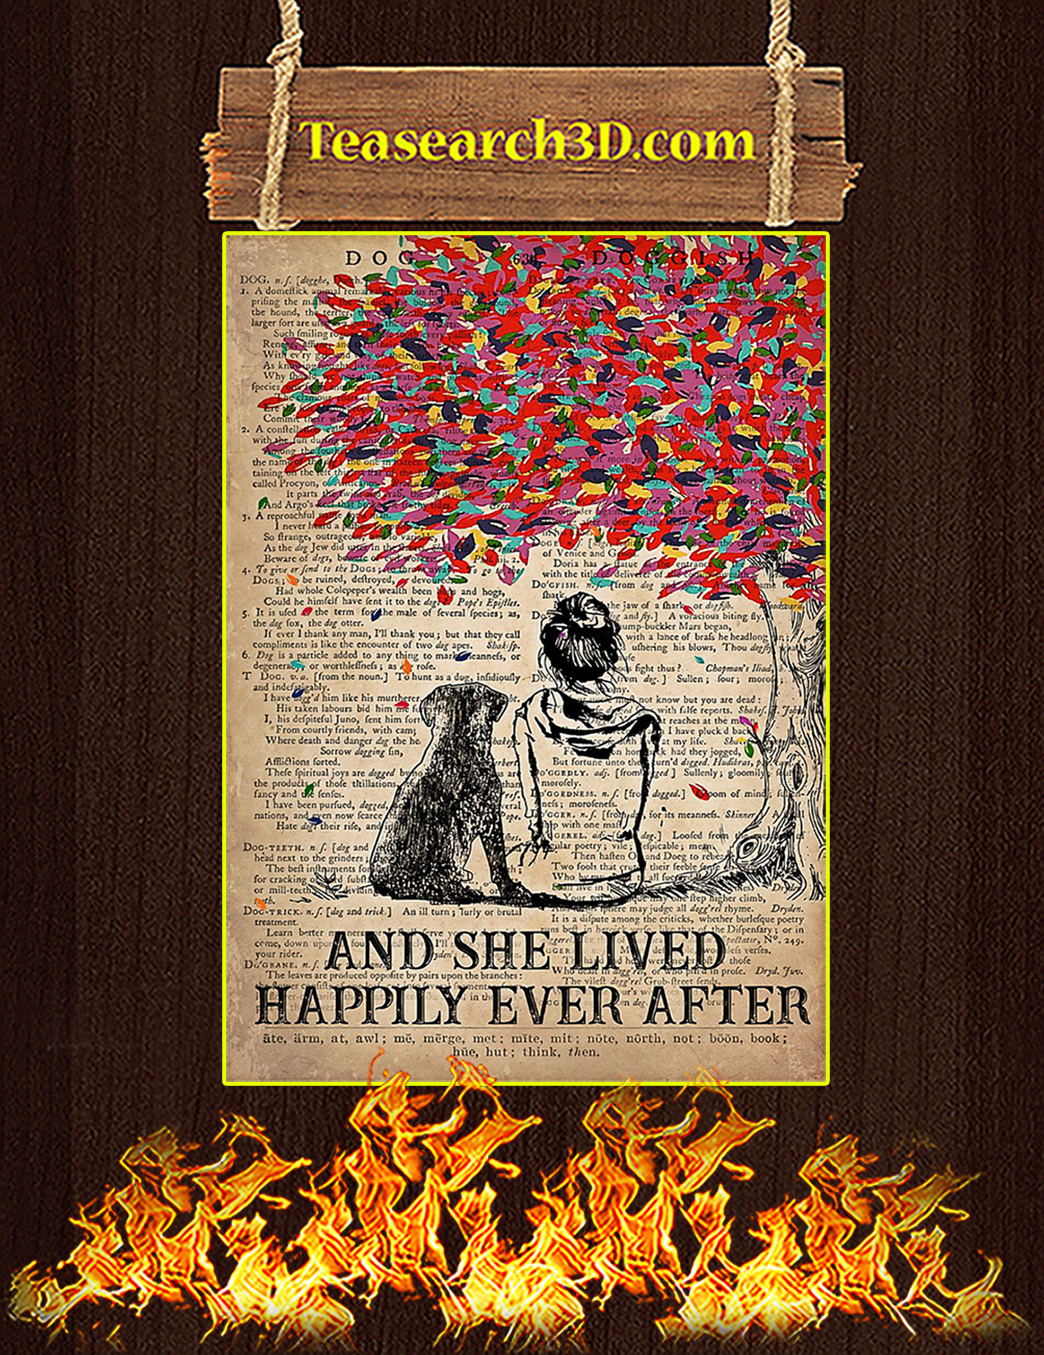 Dog labrador and she lived happily ever after poster A1